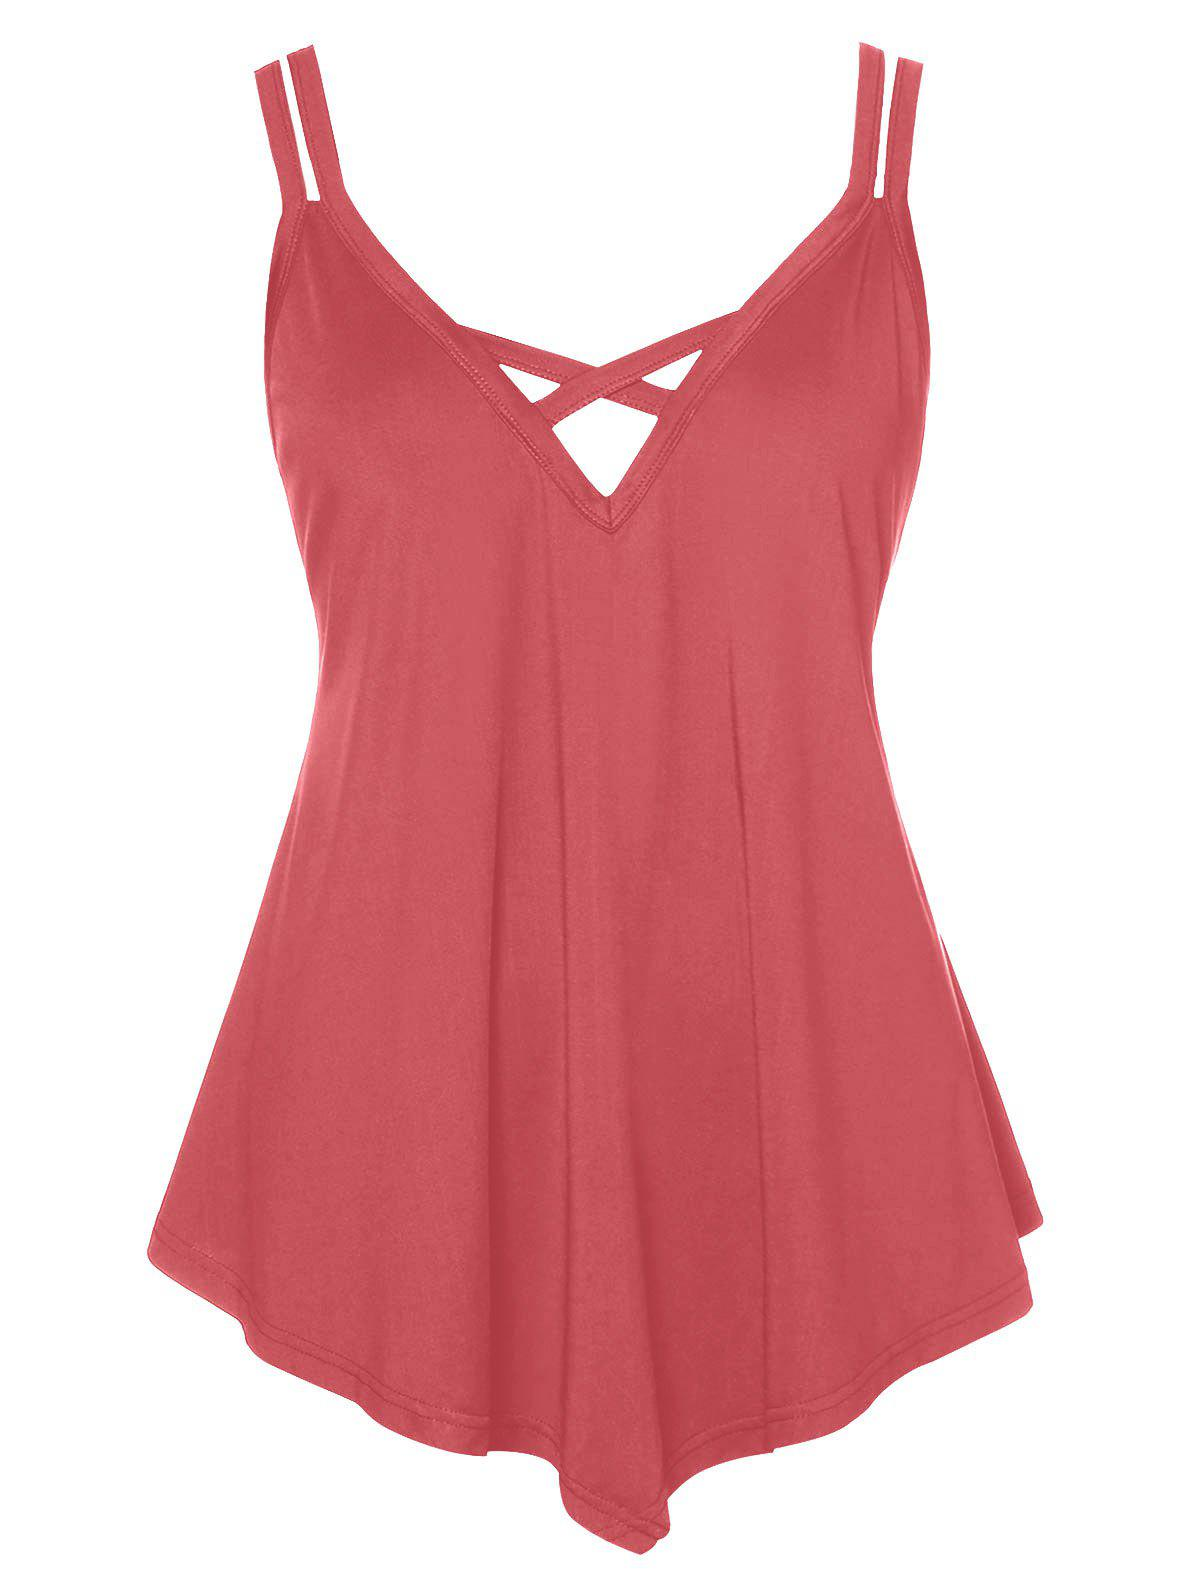 Plus Size Criss Cross Asymmetrical Cami Top - LIGHT CORAL 4X